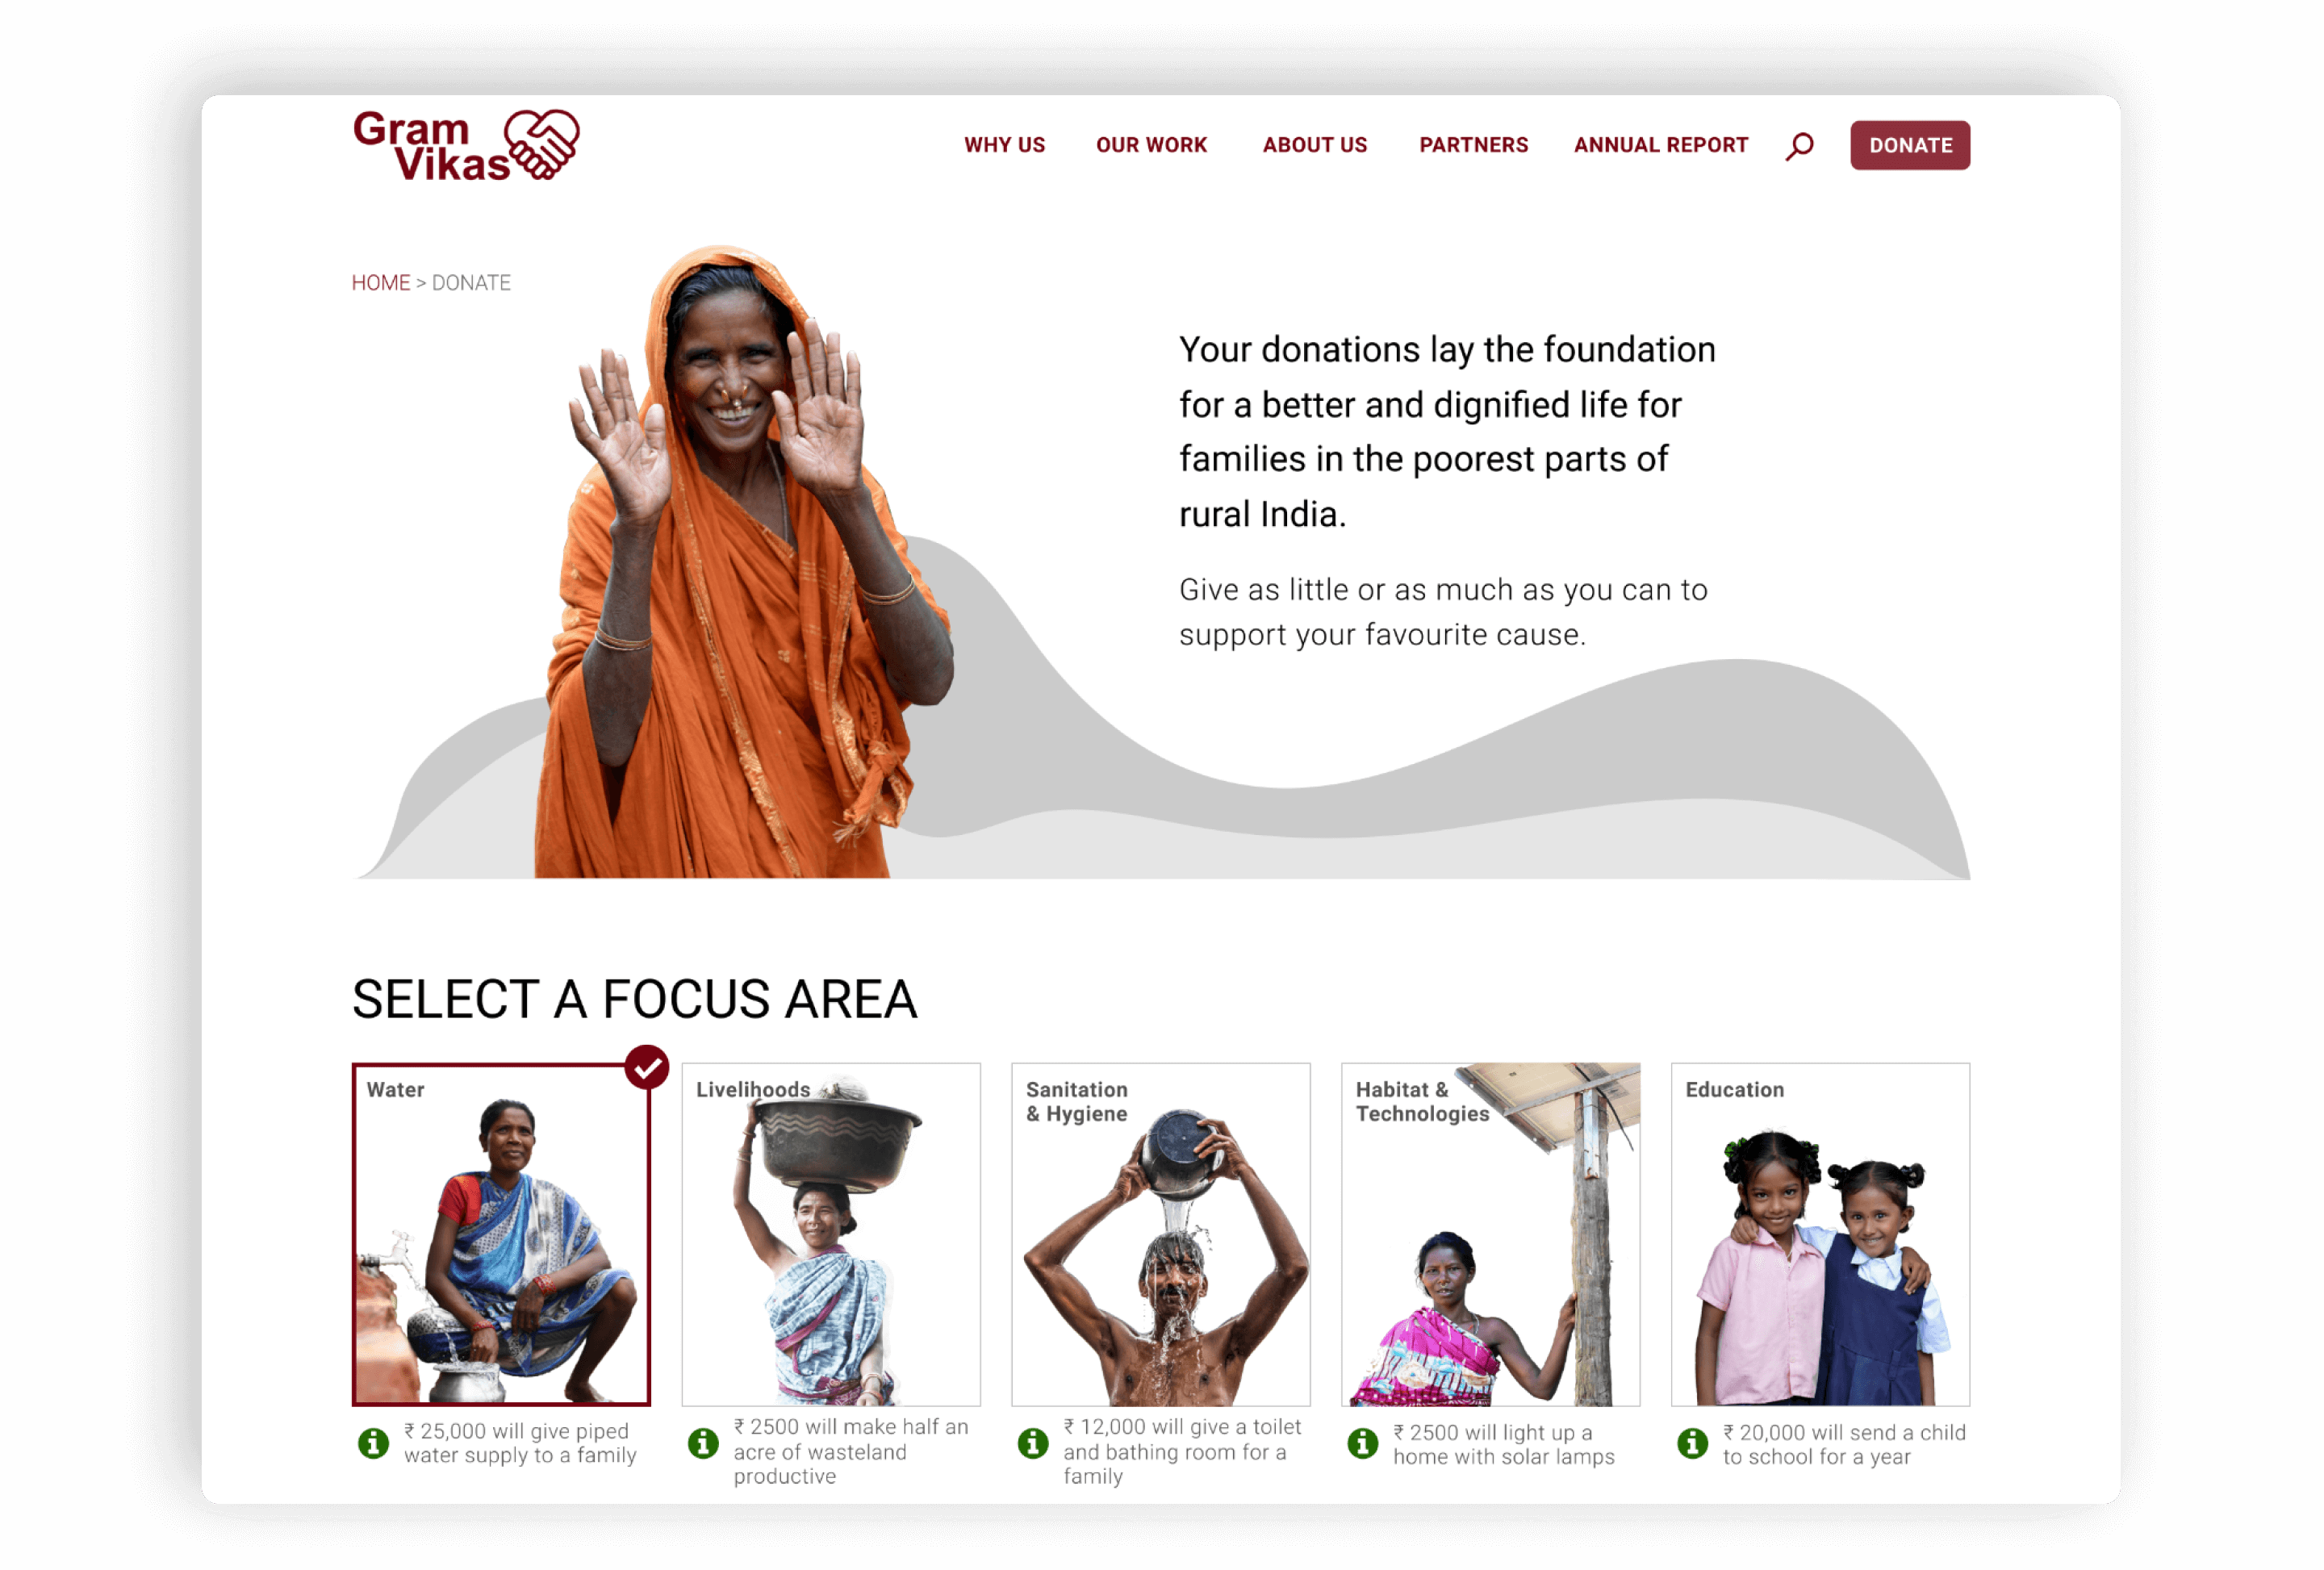 The key takeaway from the website is how the work by Gram Vikas has enabled rural families to live with dignity.